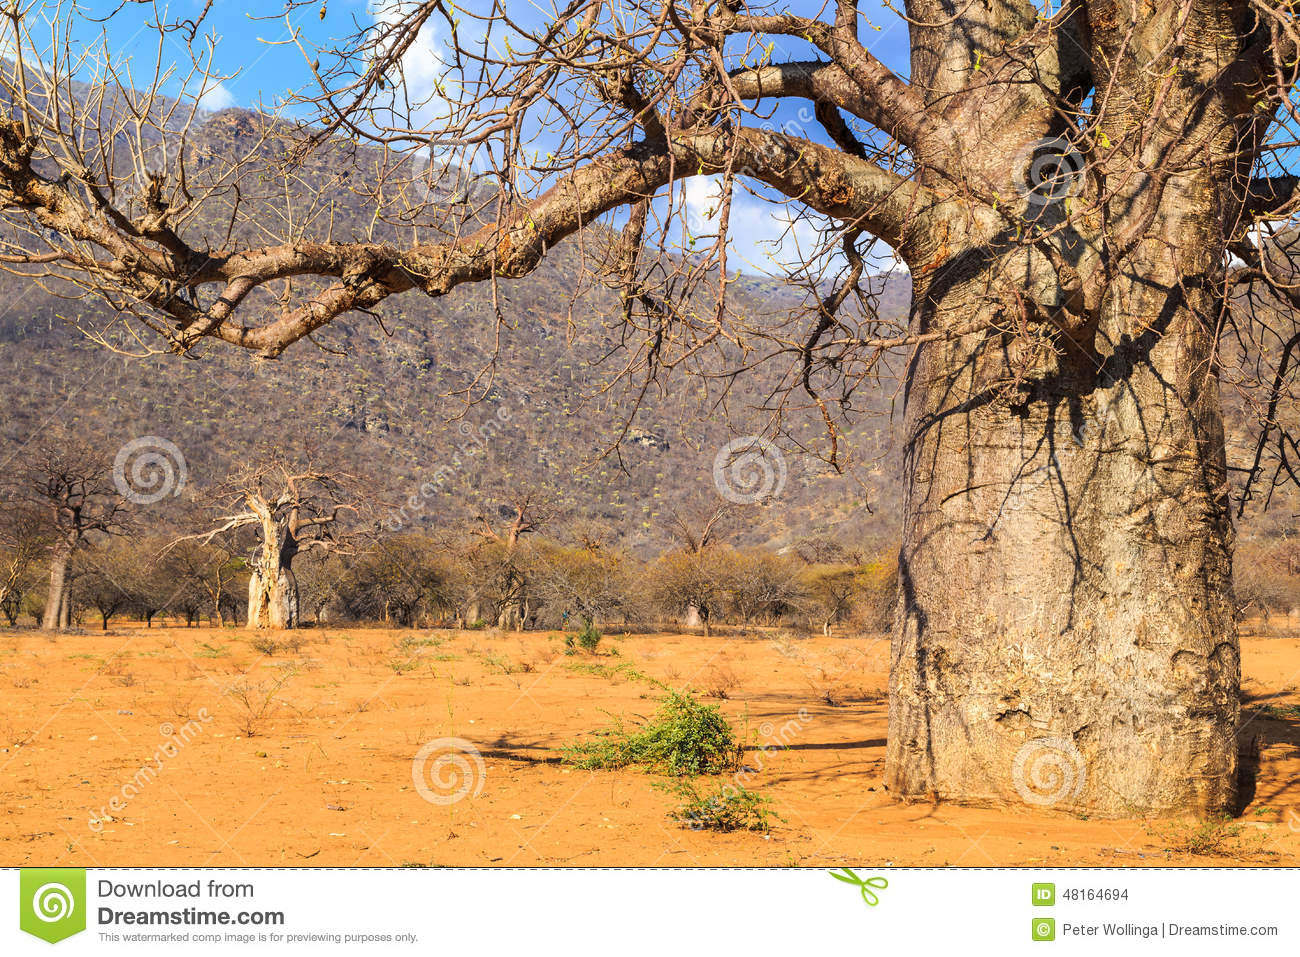 Trunk of baobab tree in a baobab forest